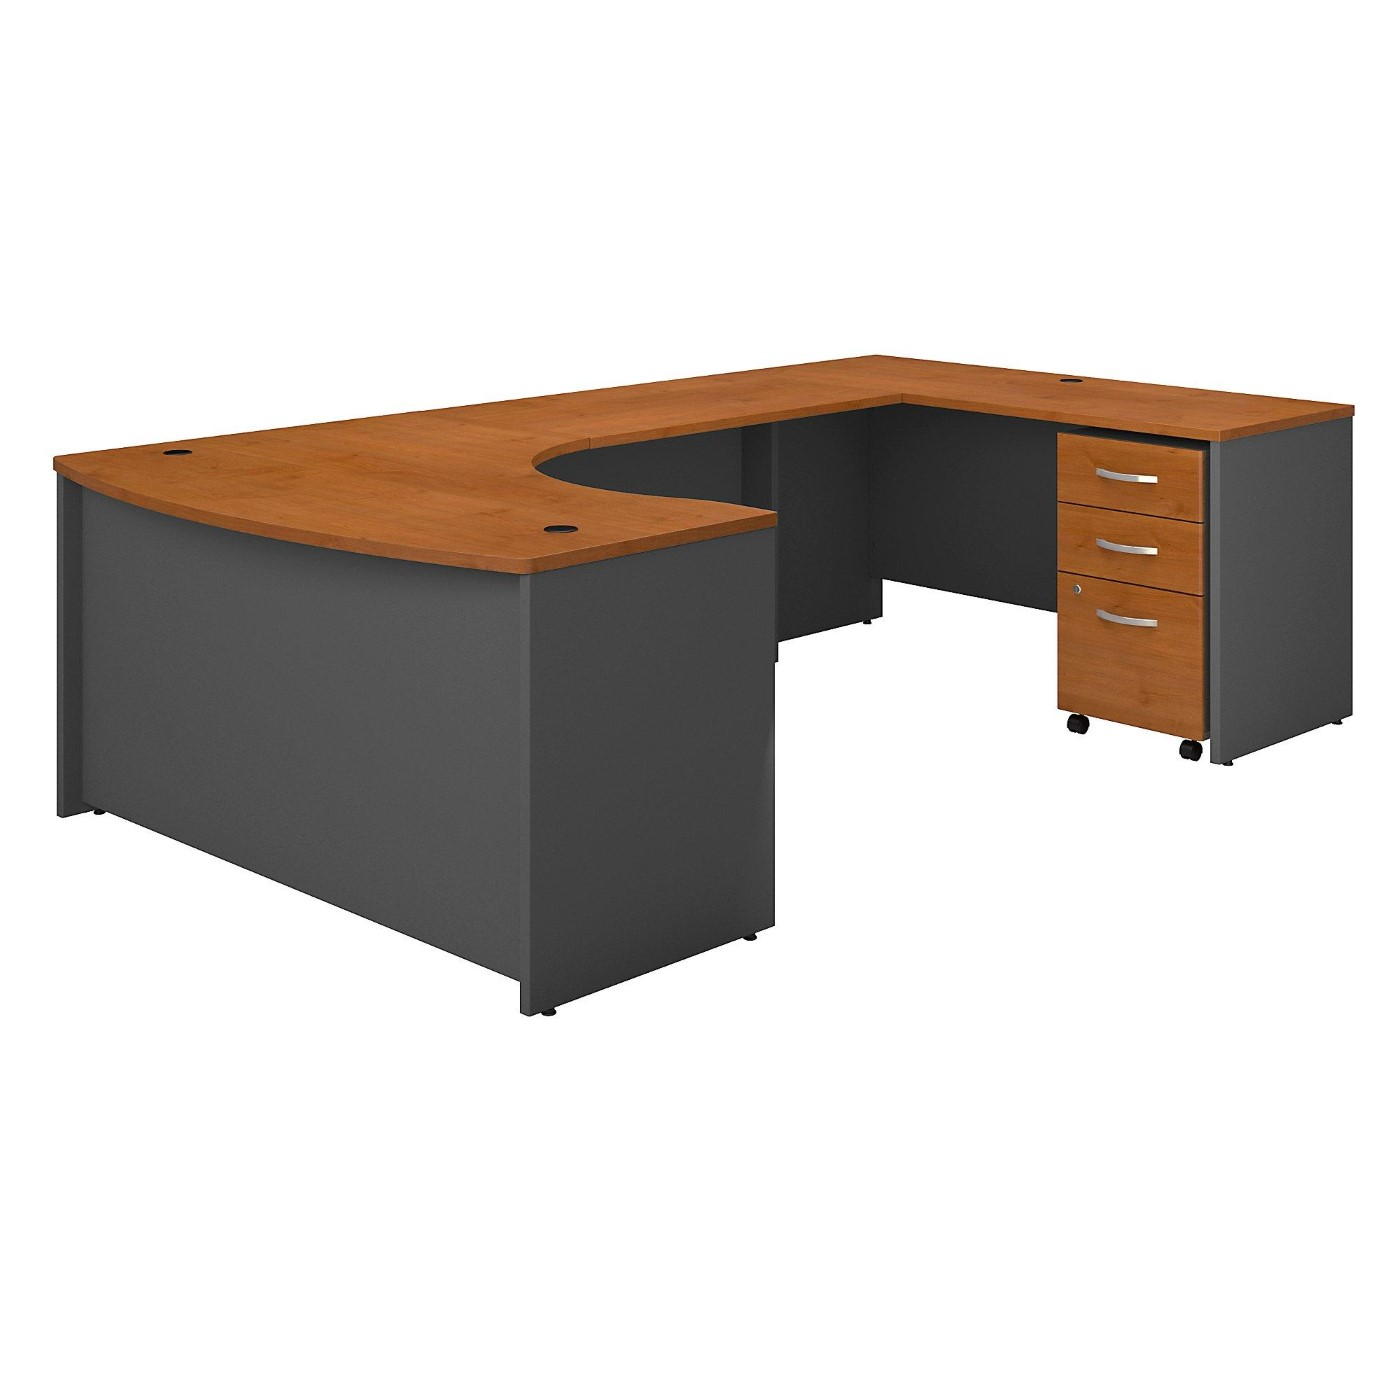 BUSH BUSINESS FURNITURE SERIES C 60W LEFT HANDED BOW FRONT U SHAPED DESK WITH MOBILE FILE CABINET. FREE SHIPPING</font></b></font>&#x1F384<font color=red><b>ERGONOMICHOME HOLIDAY SALE - ENDS DEC. 17, 2019</b></font>&#x1F384